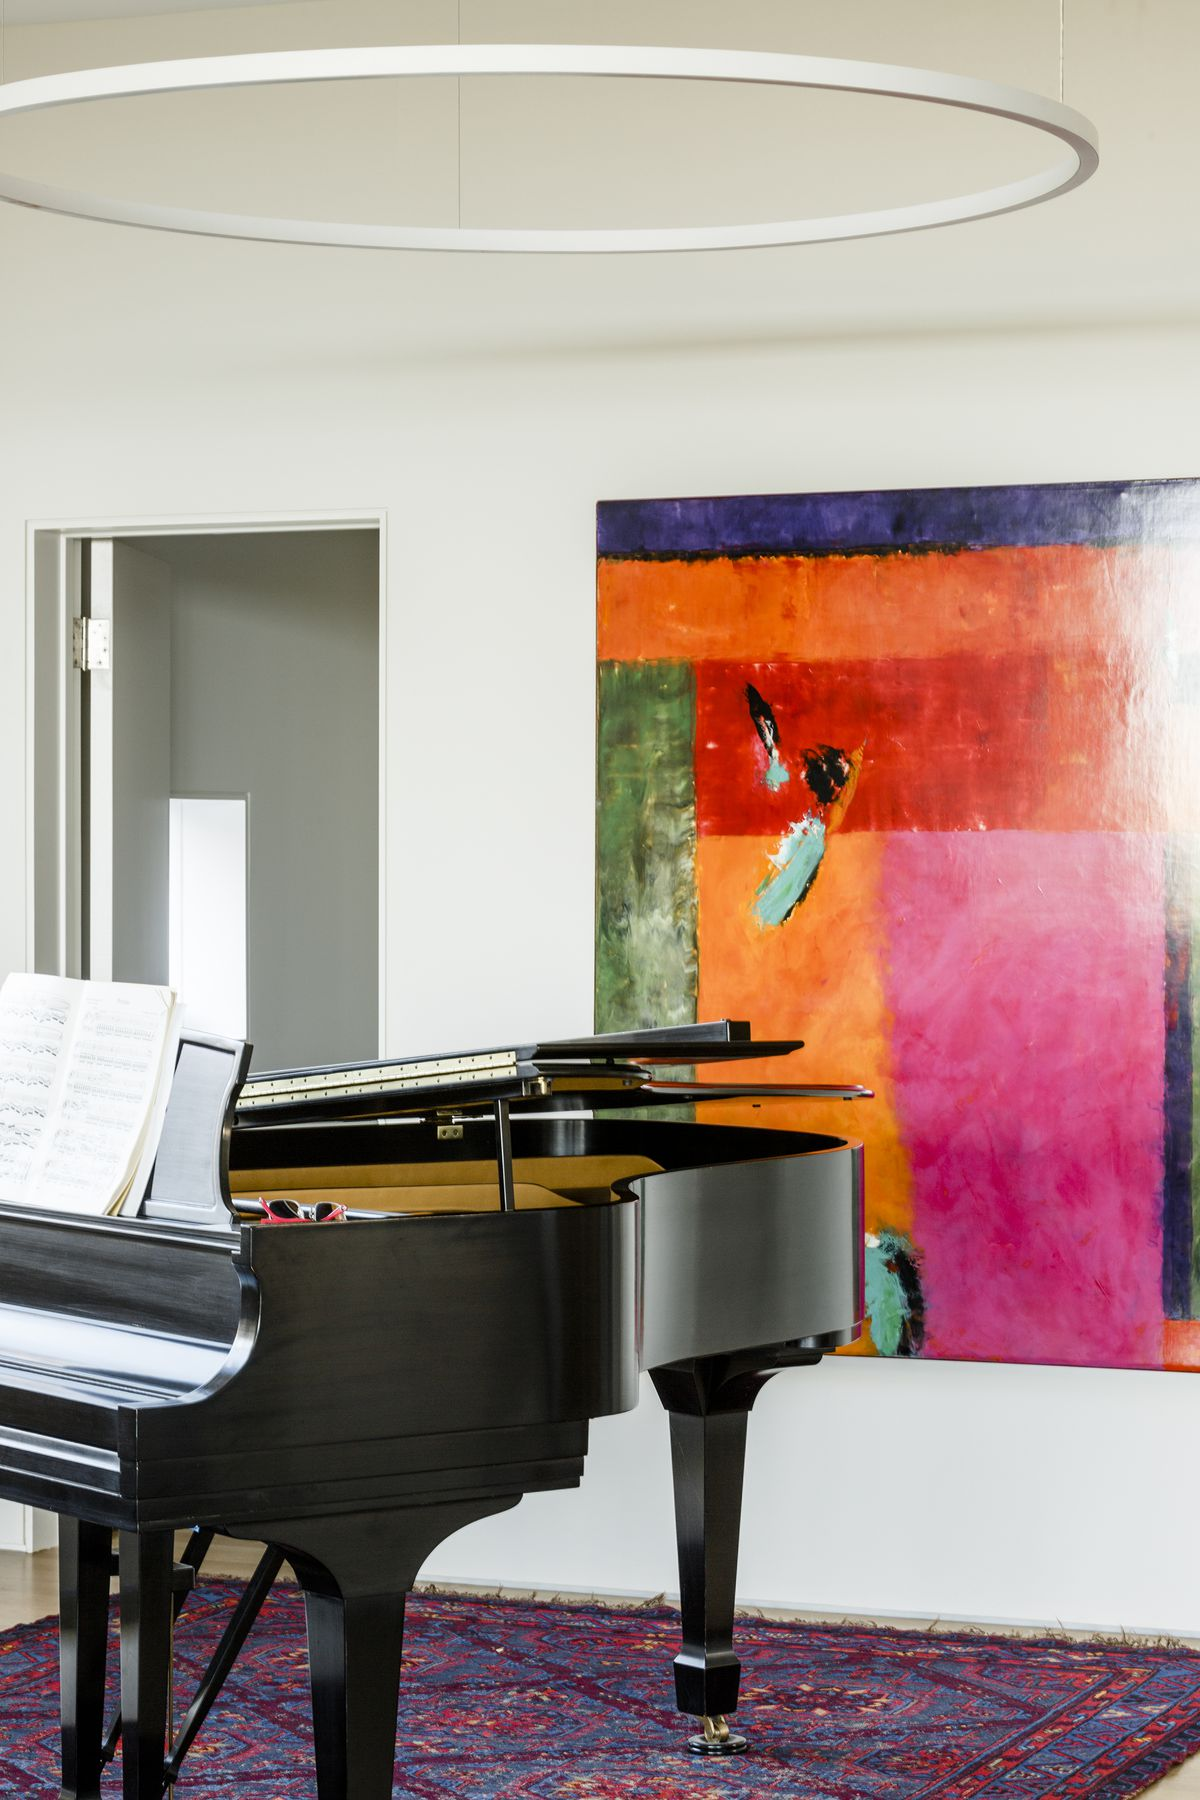 A large, black piano sits on a rug and hardwood floor. It's topped by a large, hoop-like light fixture. A brightly colored painting (mostly orange, red, and pink) hangs behind it.